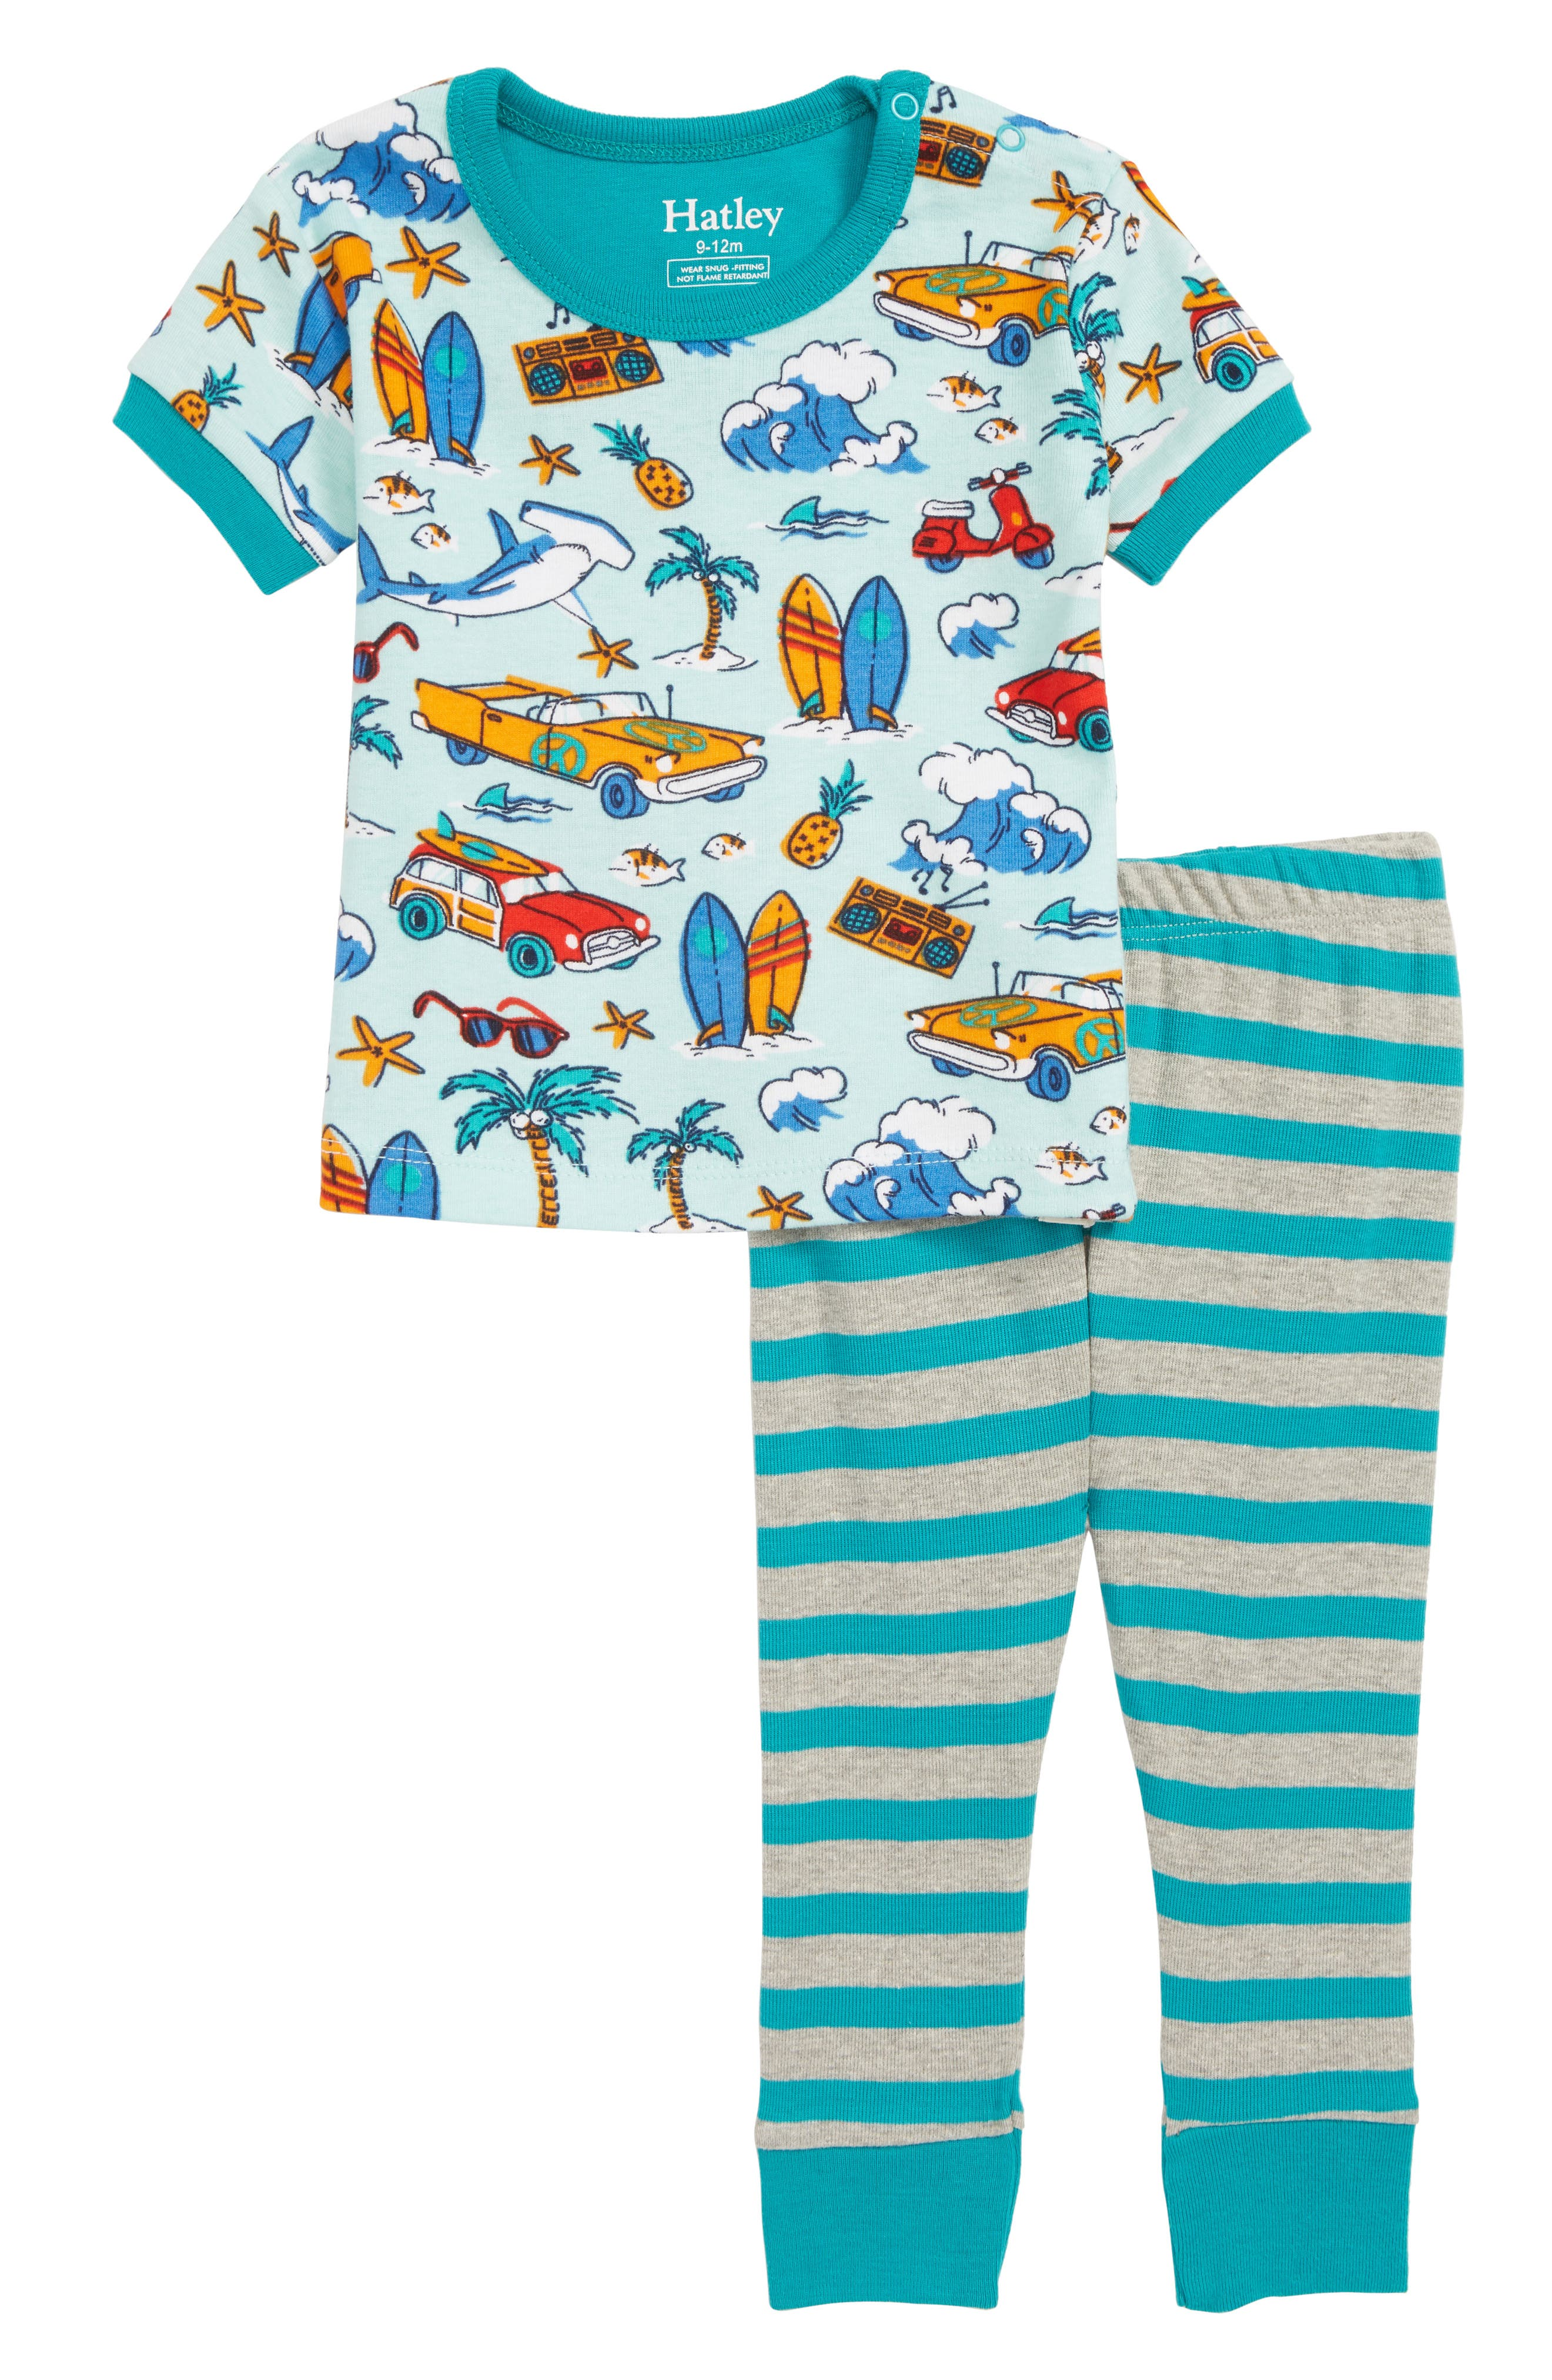 Hatley Organic Cotton Fitted Two-Piece Pajamas (Baby Boys)